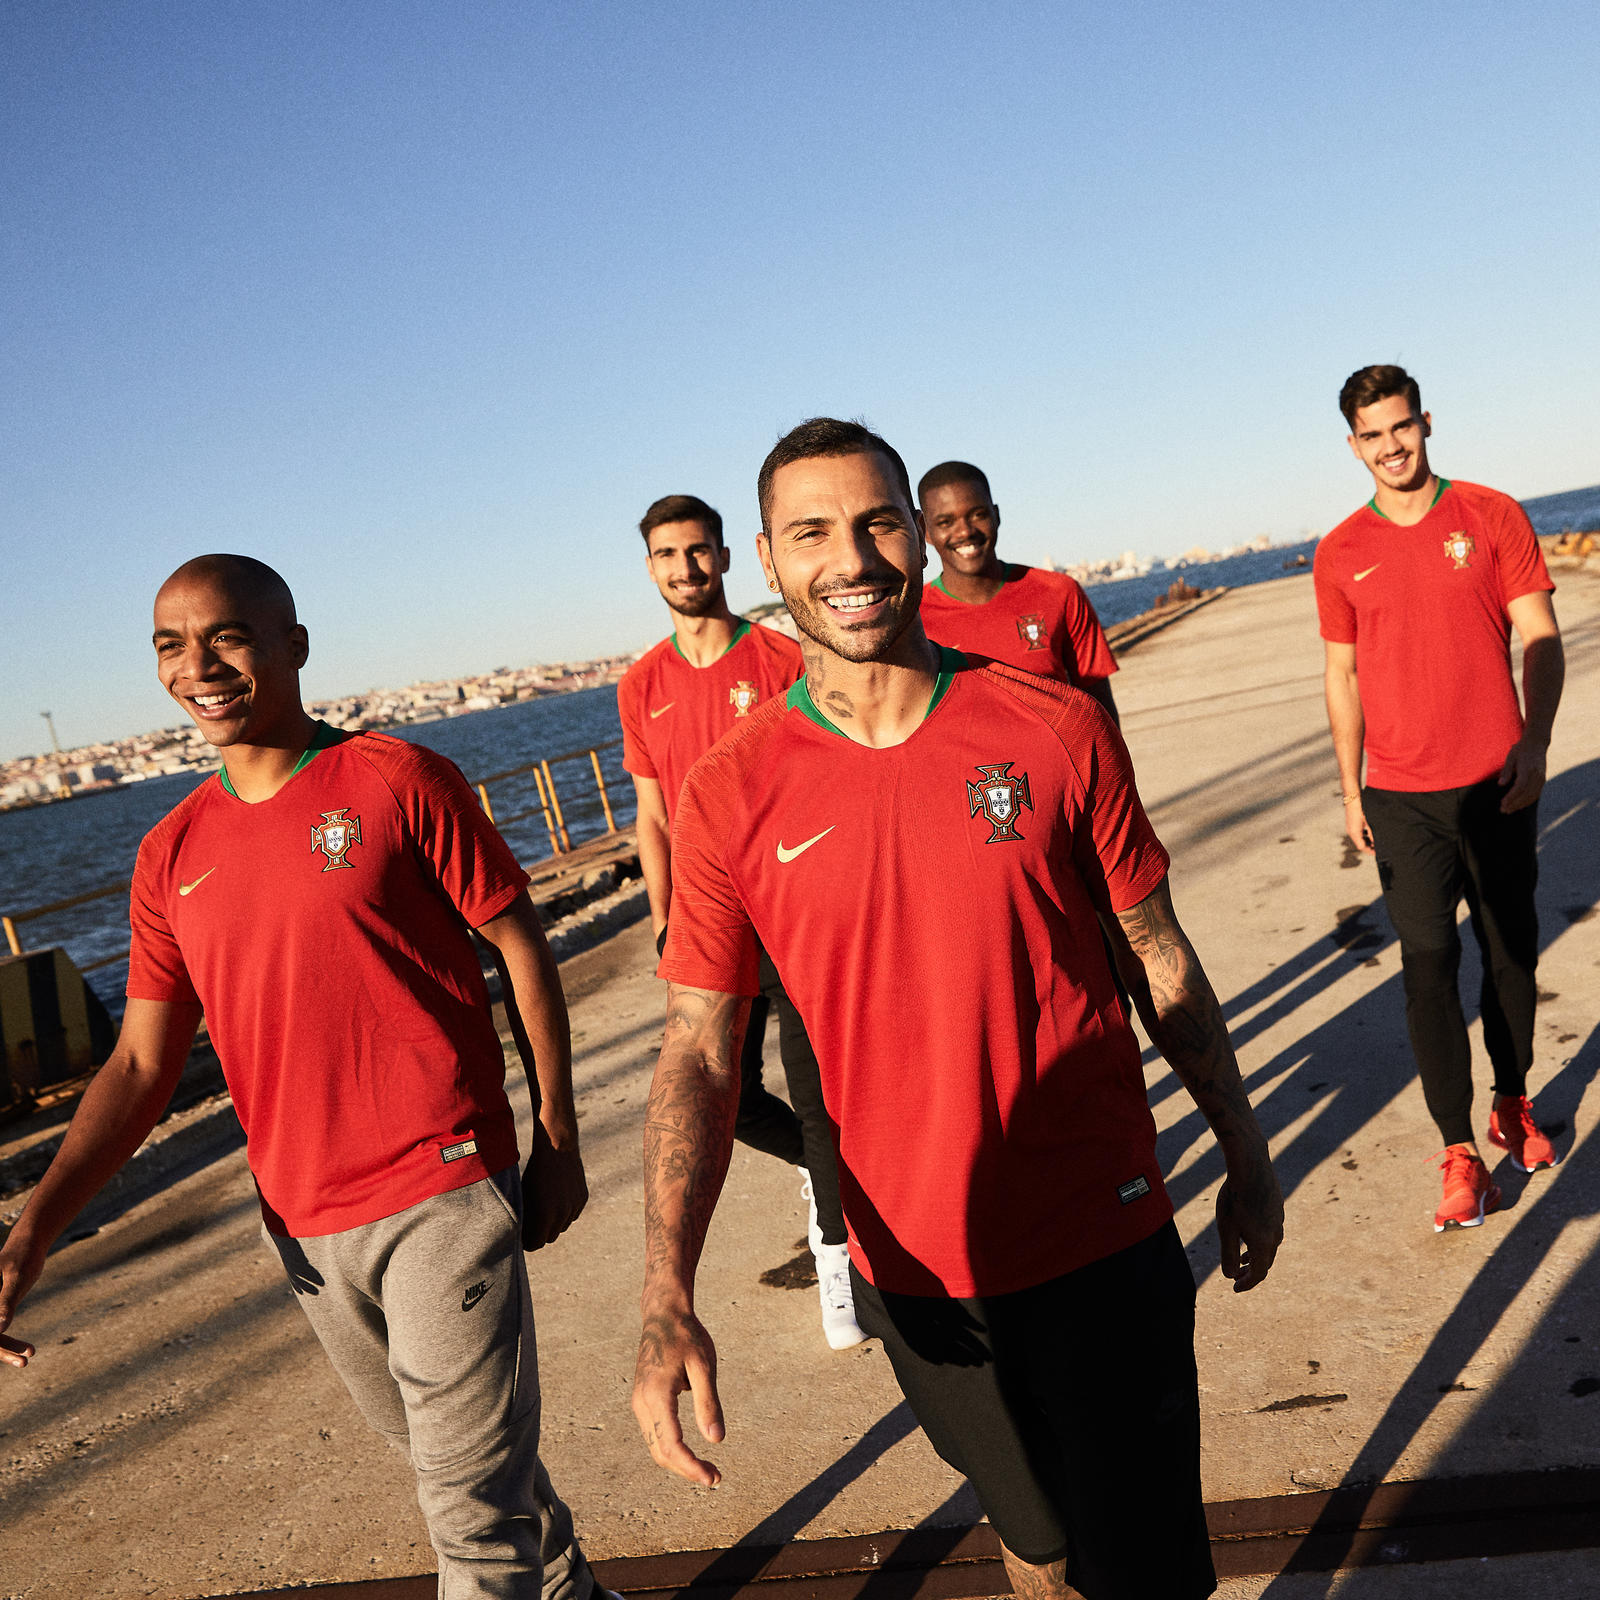 Nike News 2018 Portuguese Football Federation Collection 25 Square 1600